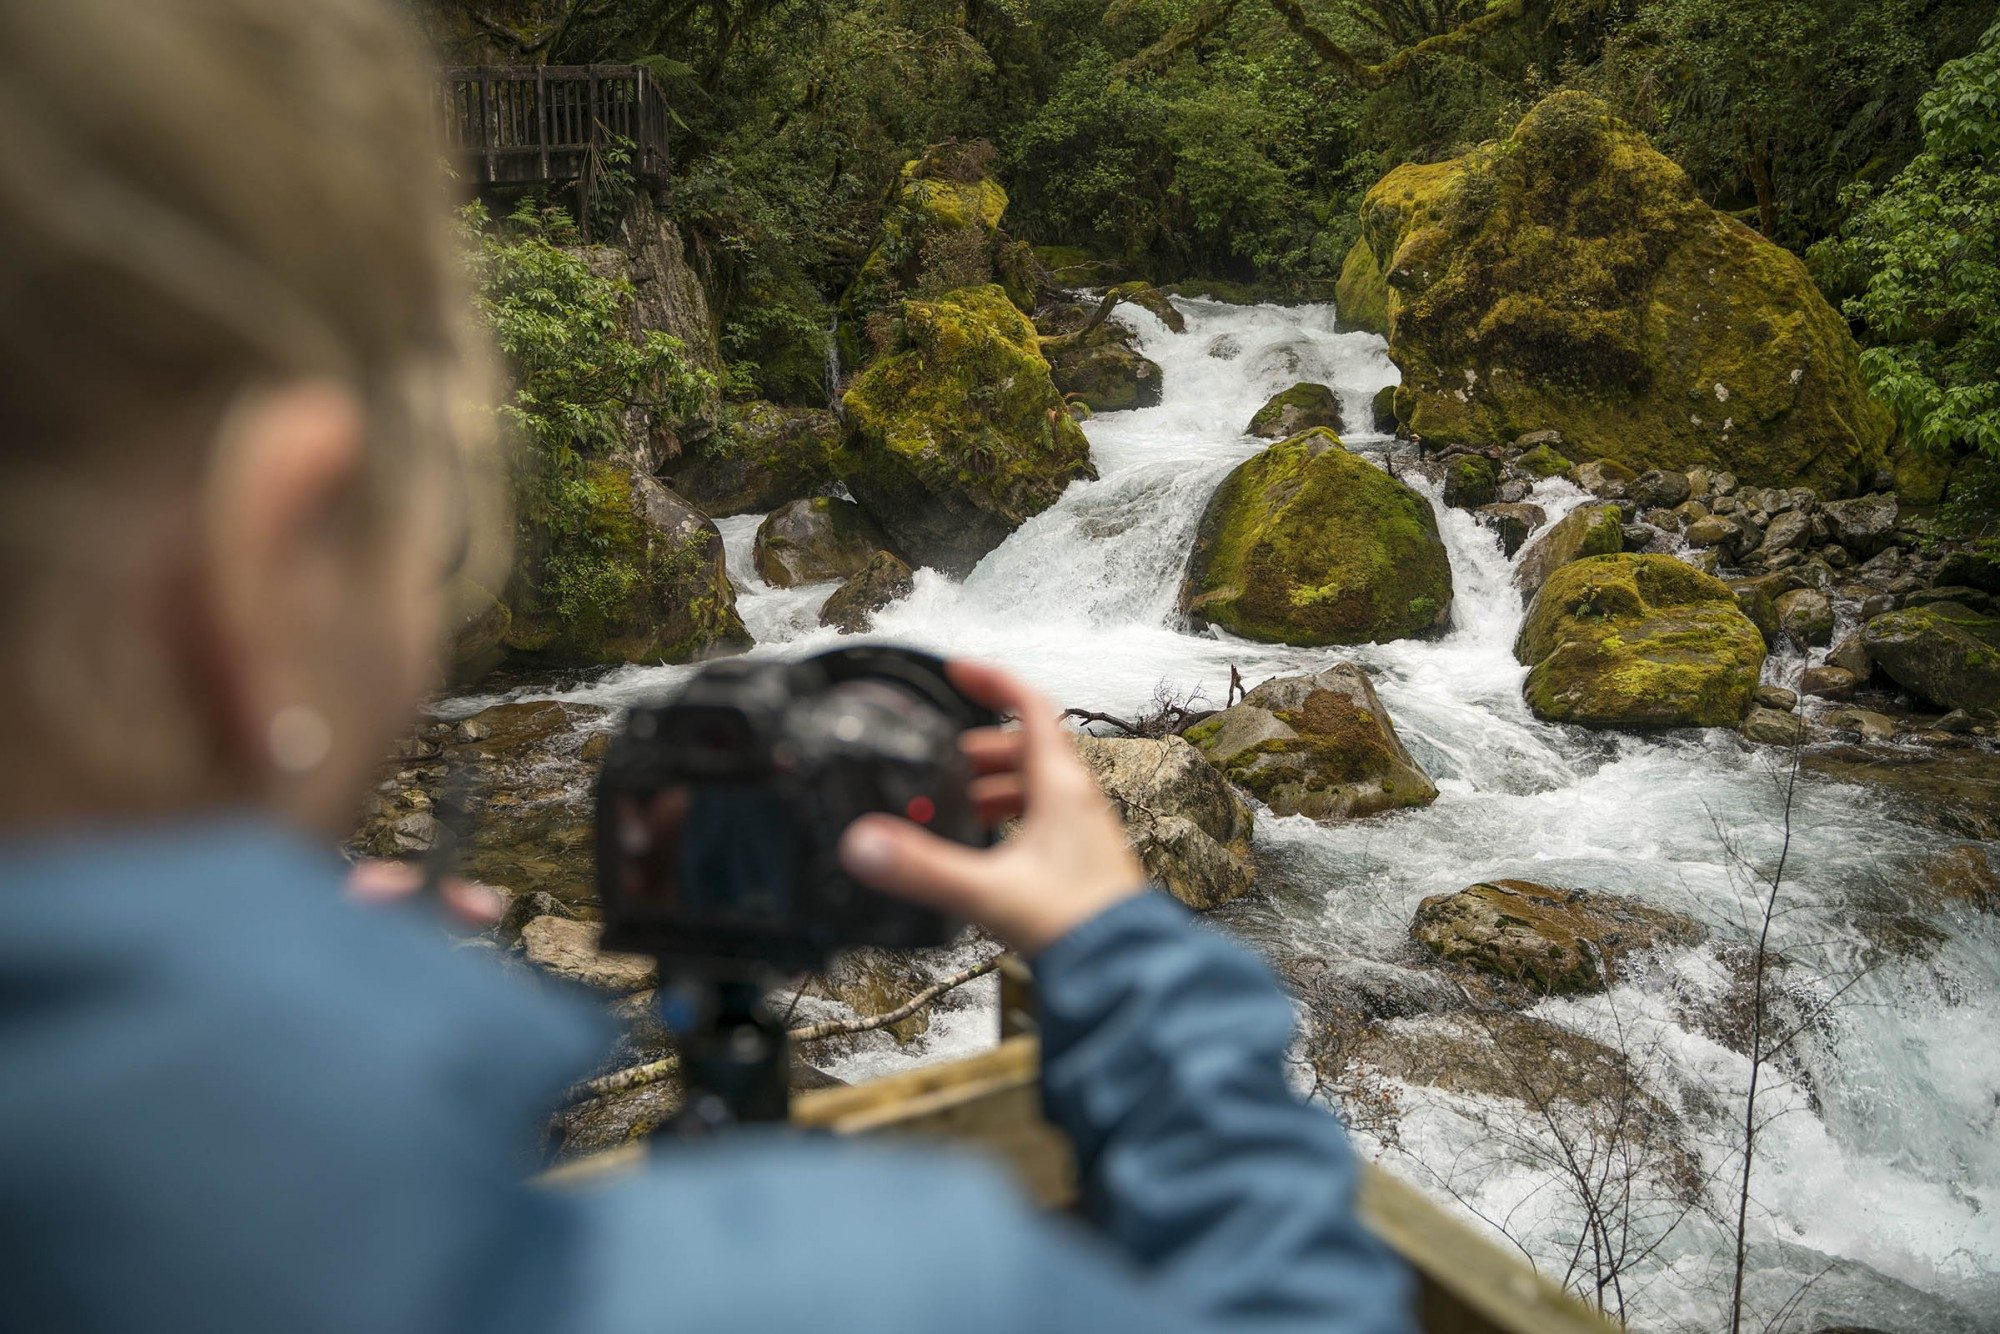 Person taking photo of waterfall